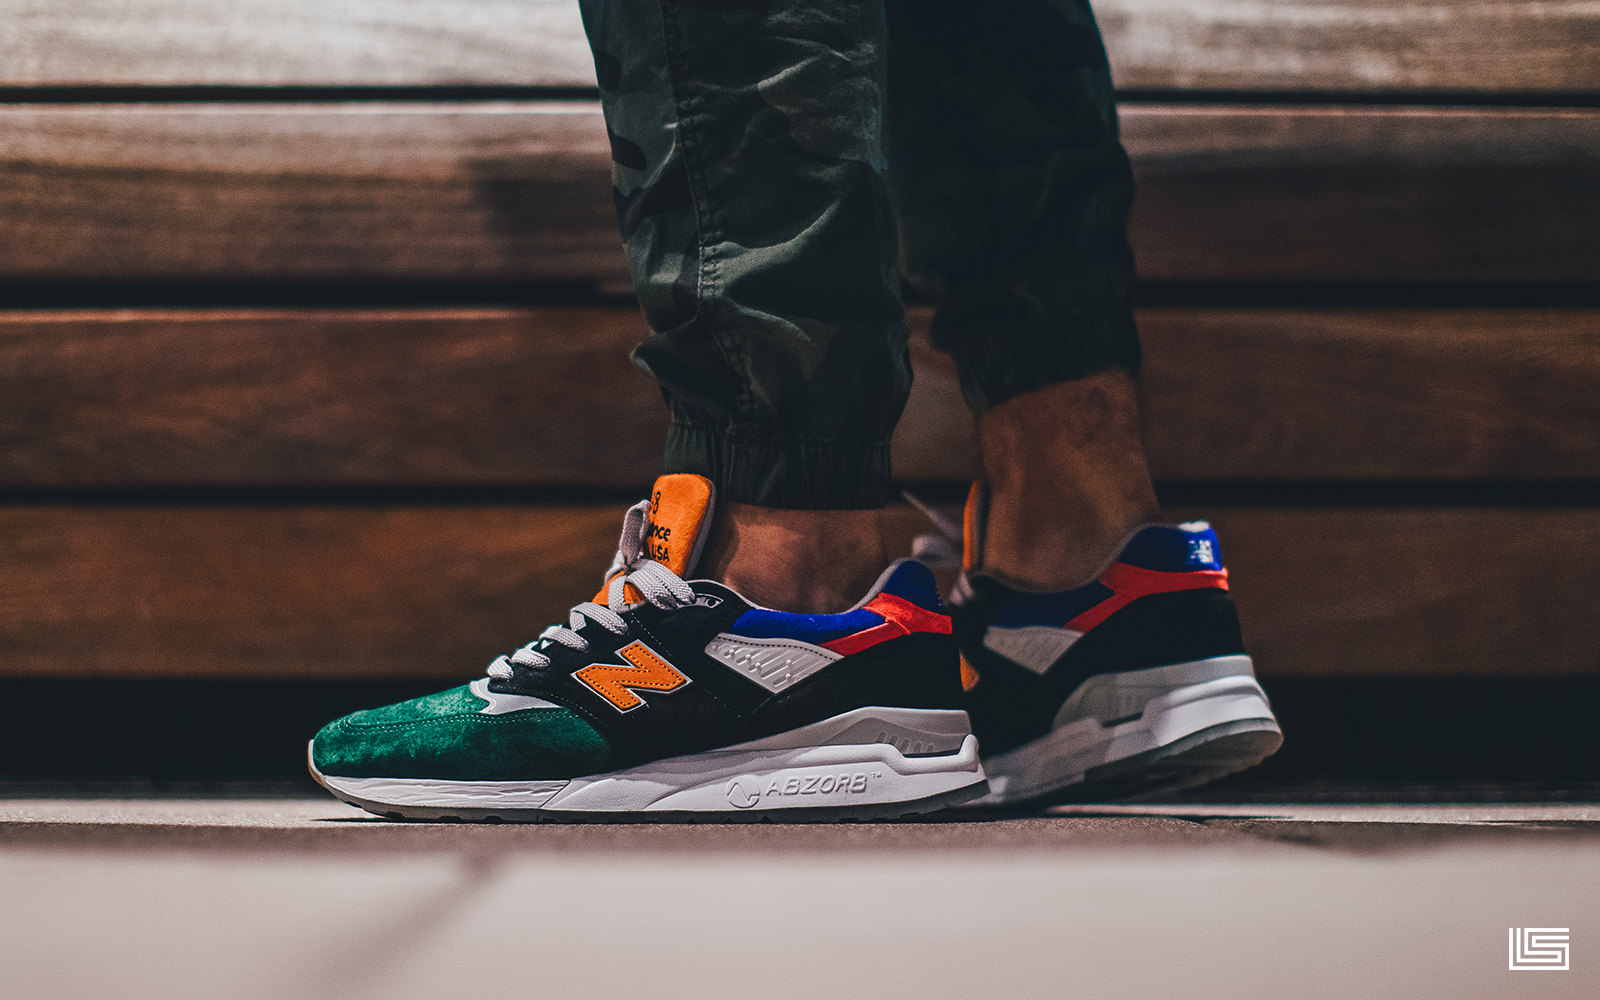 Introducing The New DTLR VILLA X New Balance 998 SMU 'Four 4 Four